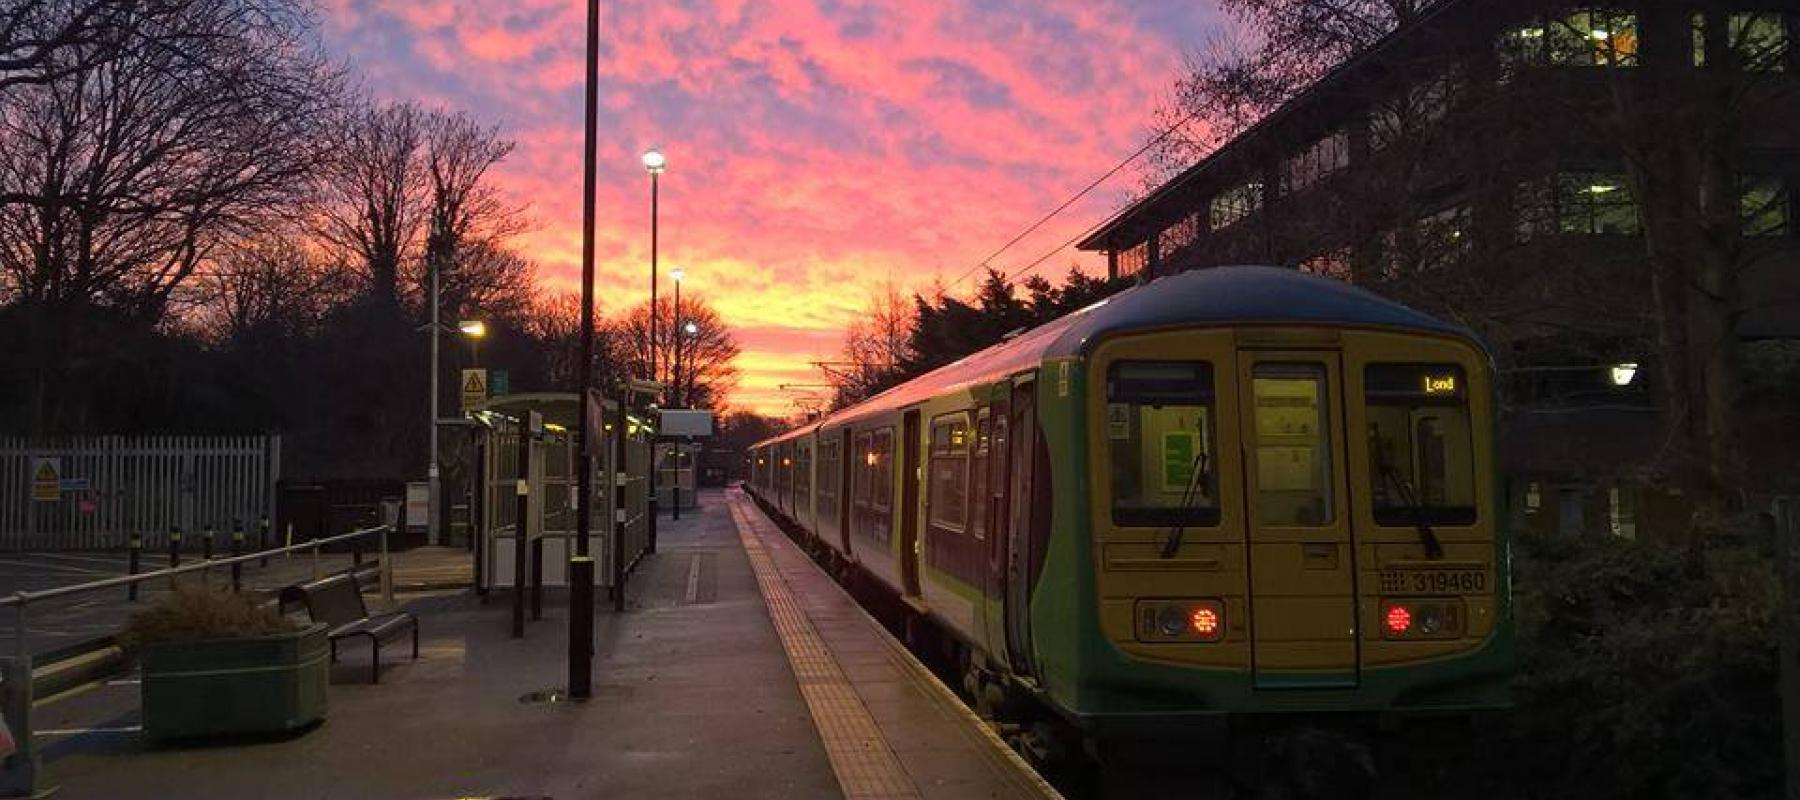 Sunset on the Abbey Line